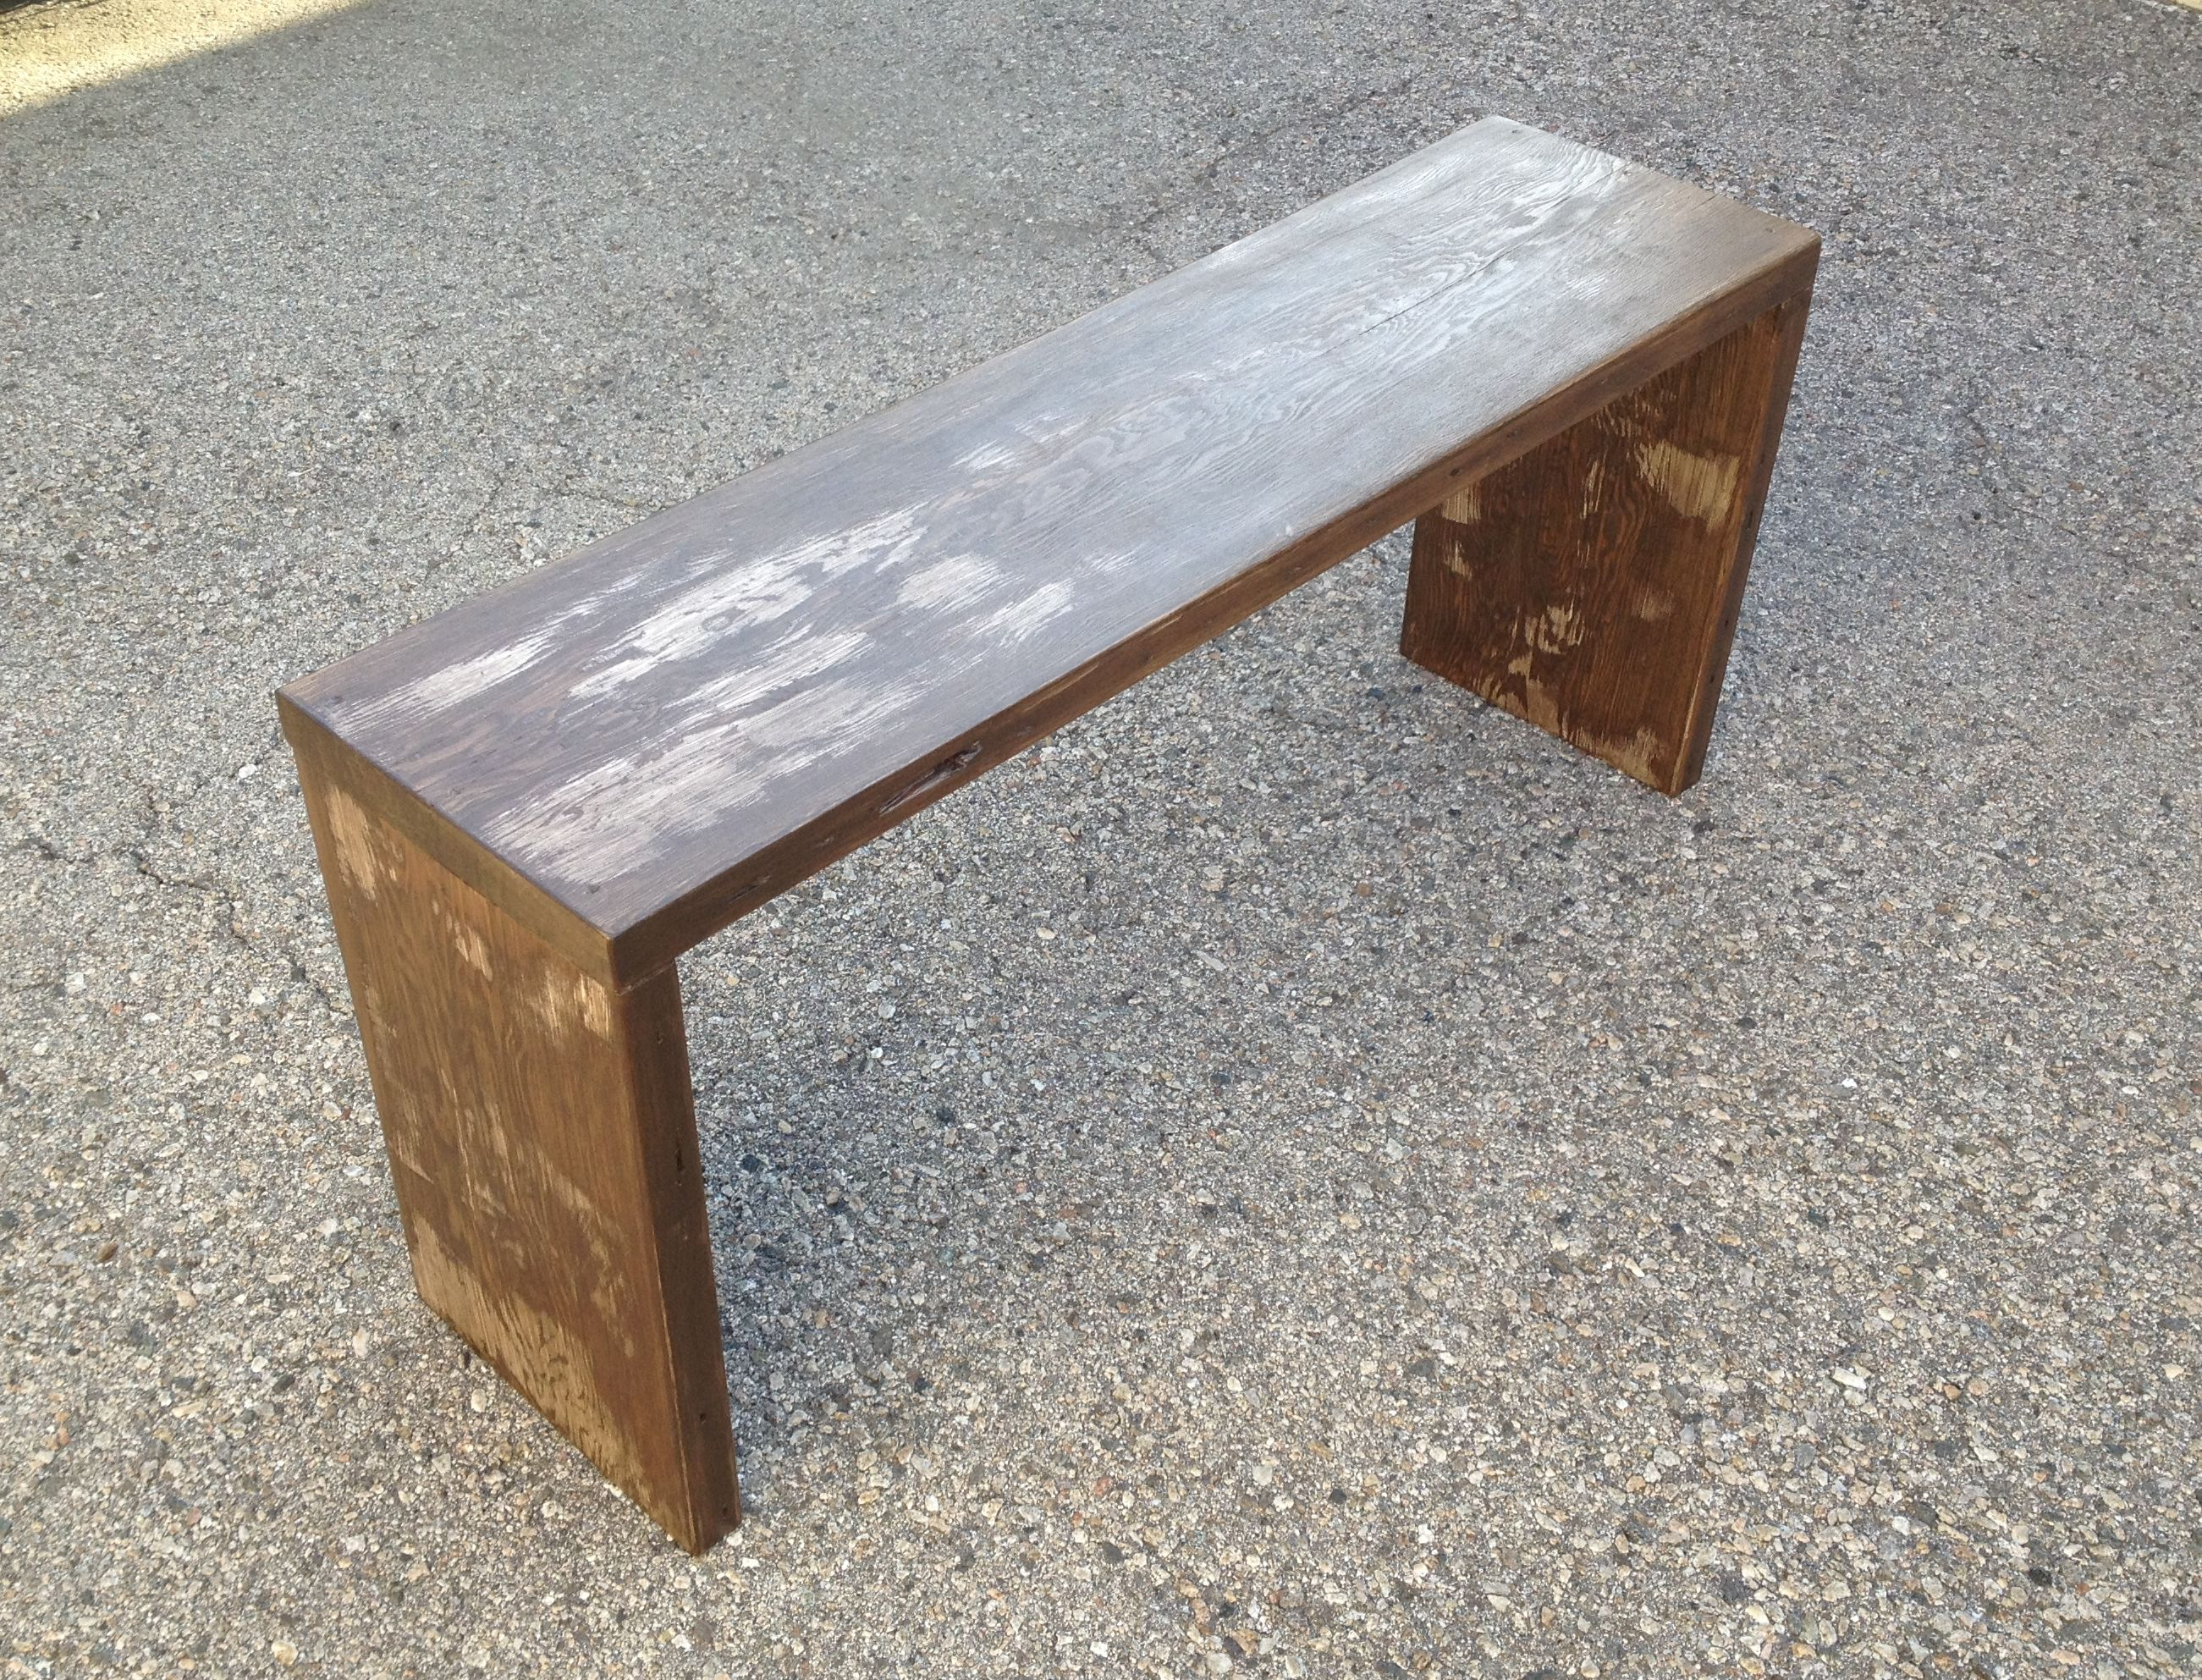 Accessories FurnitureReclaimed Build A Wooden Bench Furniture